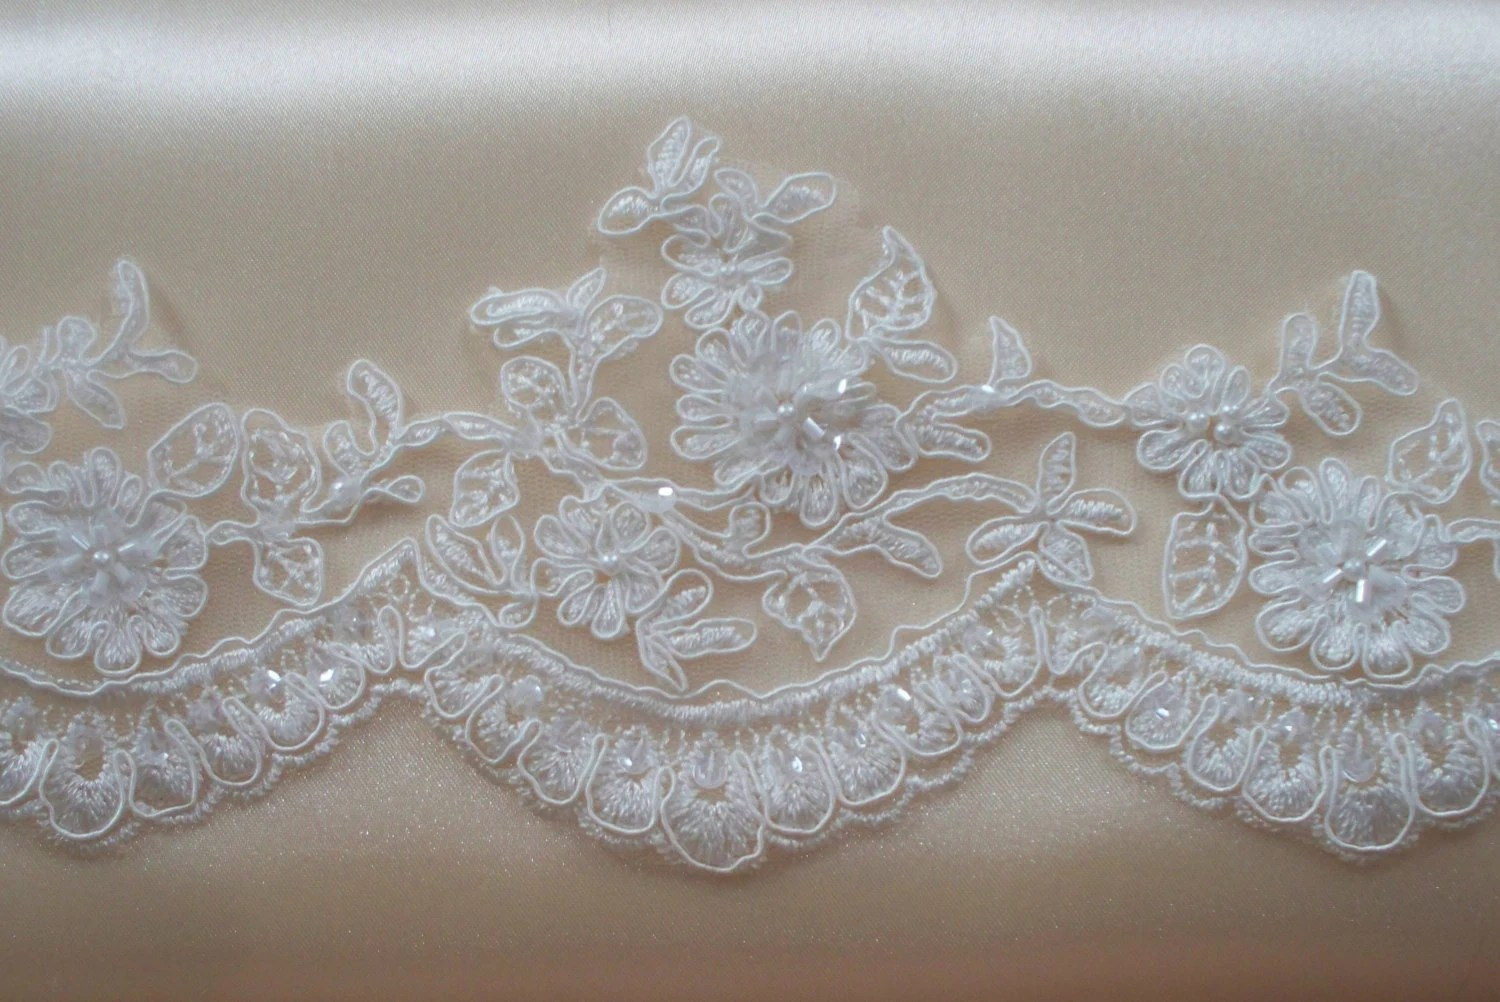 Ivory Lace Trim Bridal Lace Wedding Gown Lace Beaded